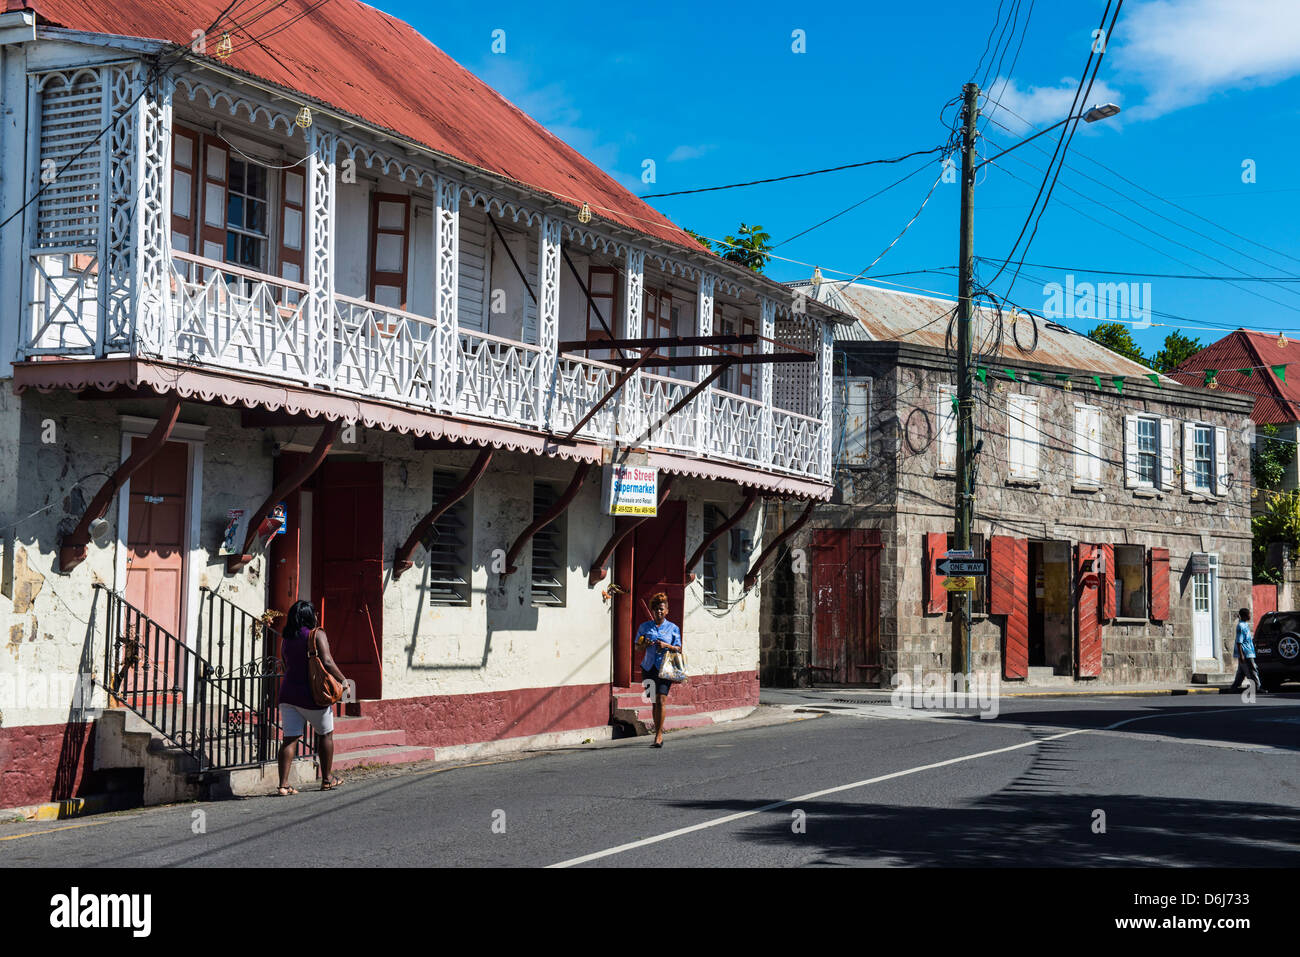 Downtown Charlestown, capital of Nevis Island, St. Kitts and Nevis, Leeward Islands, West Indies, Caribbean, Central - Stock Image